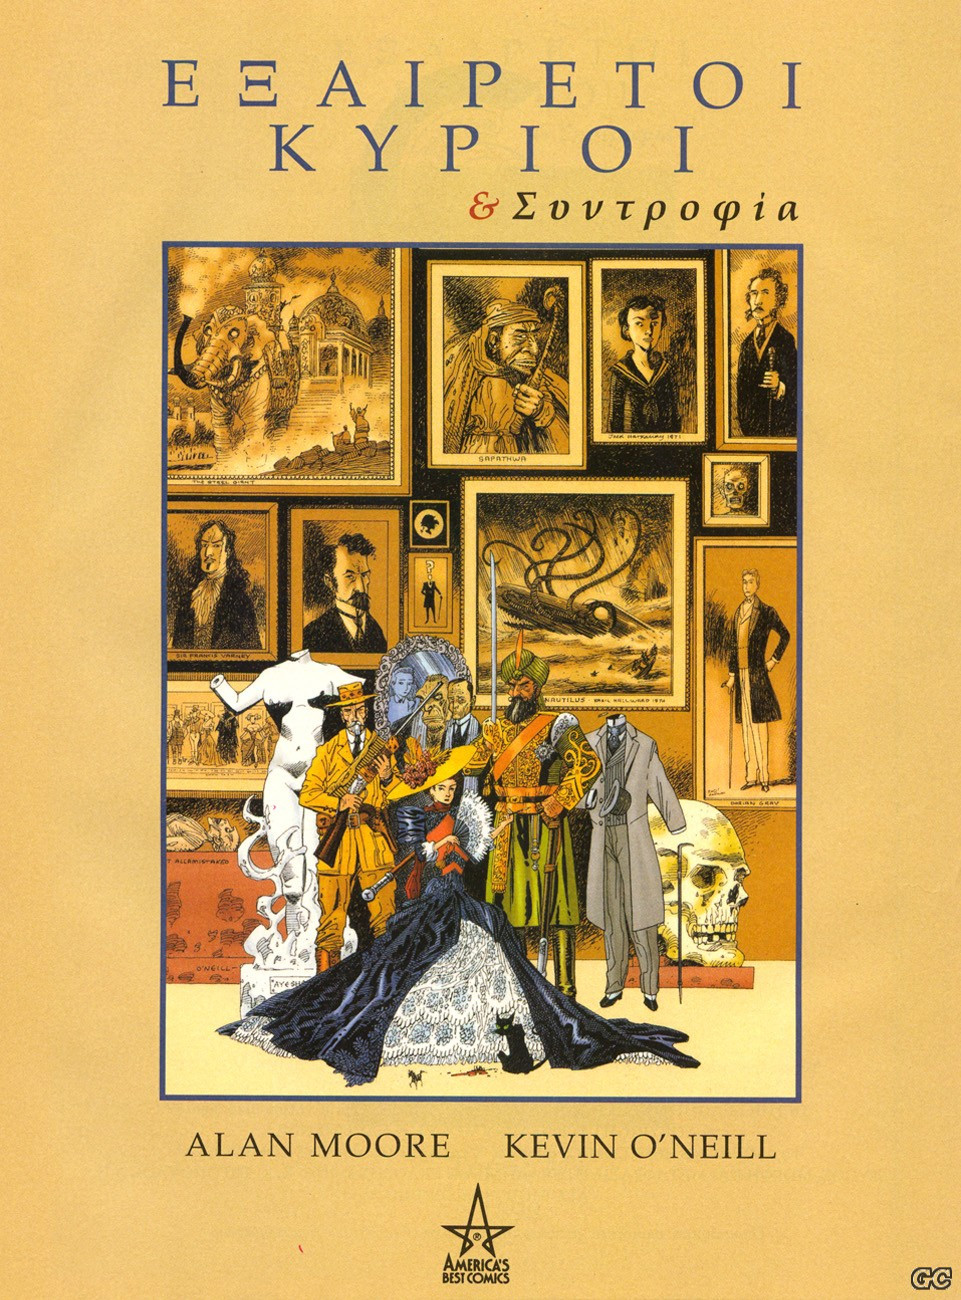 ΕΞΑΙΡΕΤΟΙ ΚΥΡΙΟΙ ΚΑΙ ΣΥΝΤΡΟΦΙΑ ( LEAGUE OF EXTRAORDINARY GENTLEMEN ) [ ALAN MOORE, KEVIN O'NEILL ]